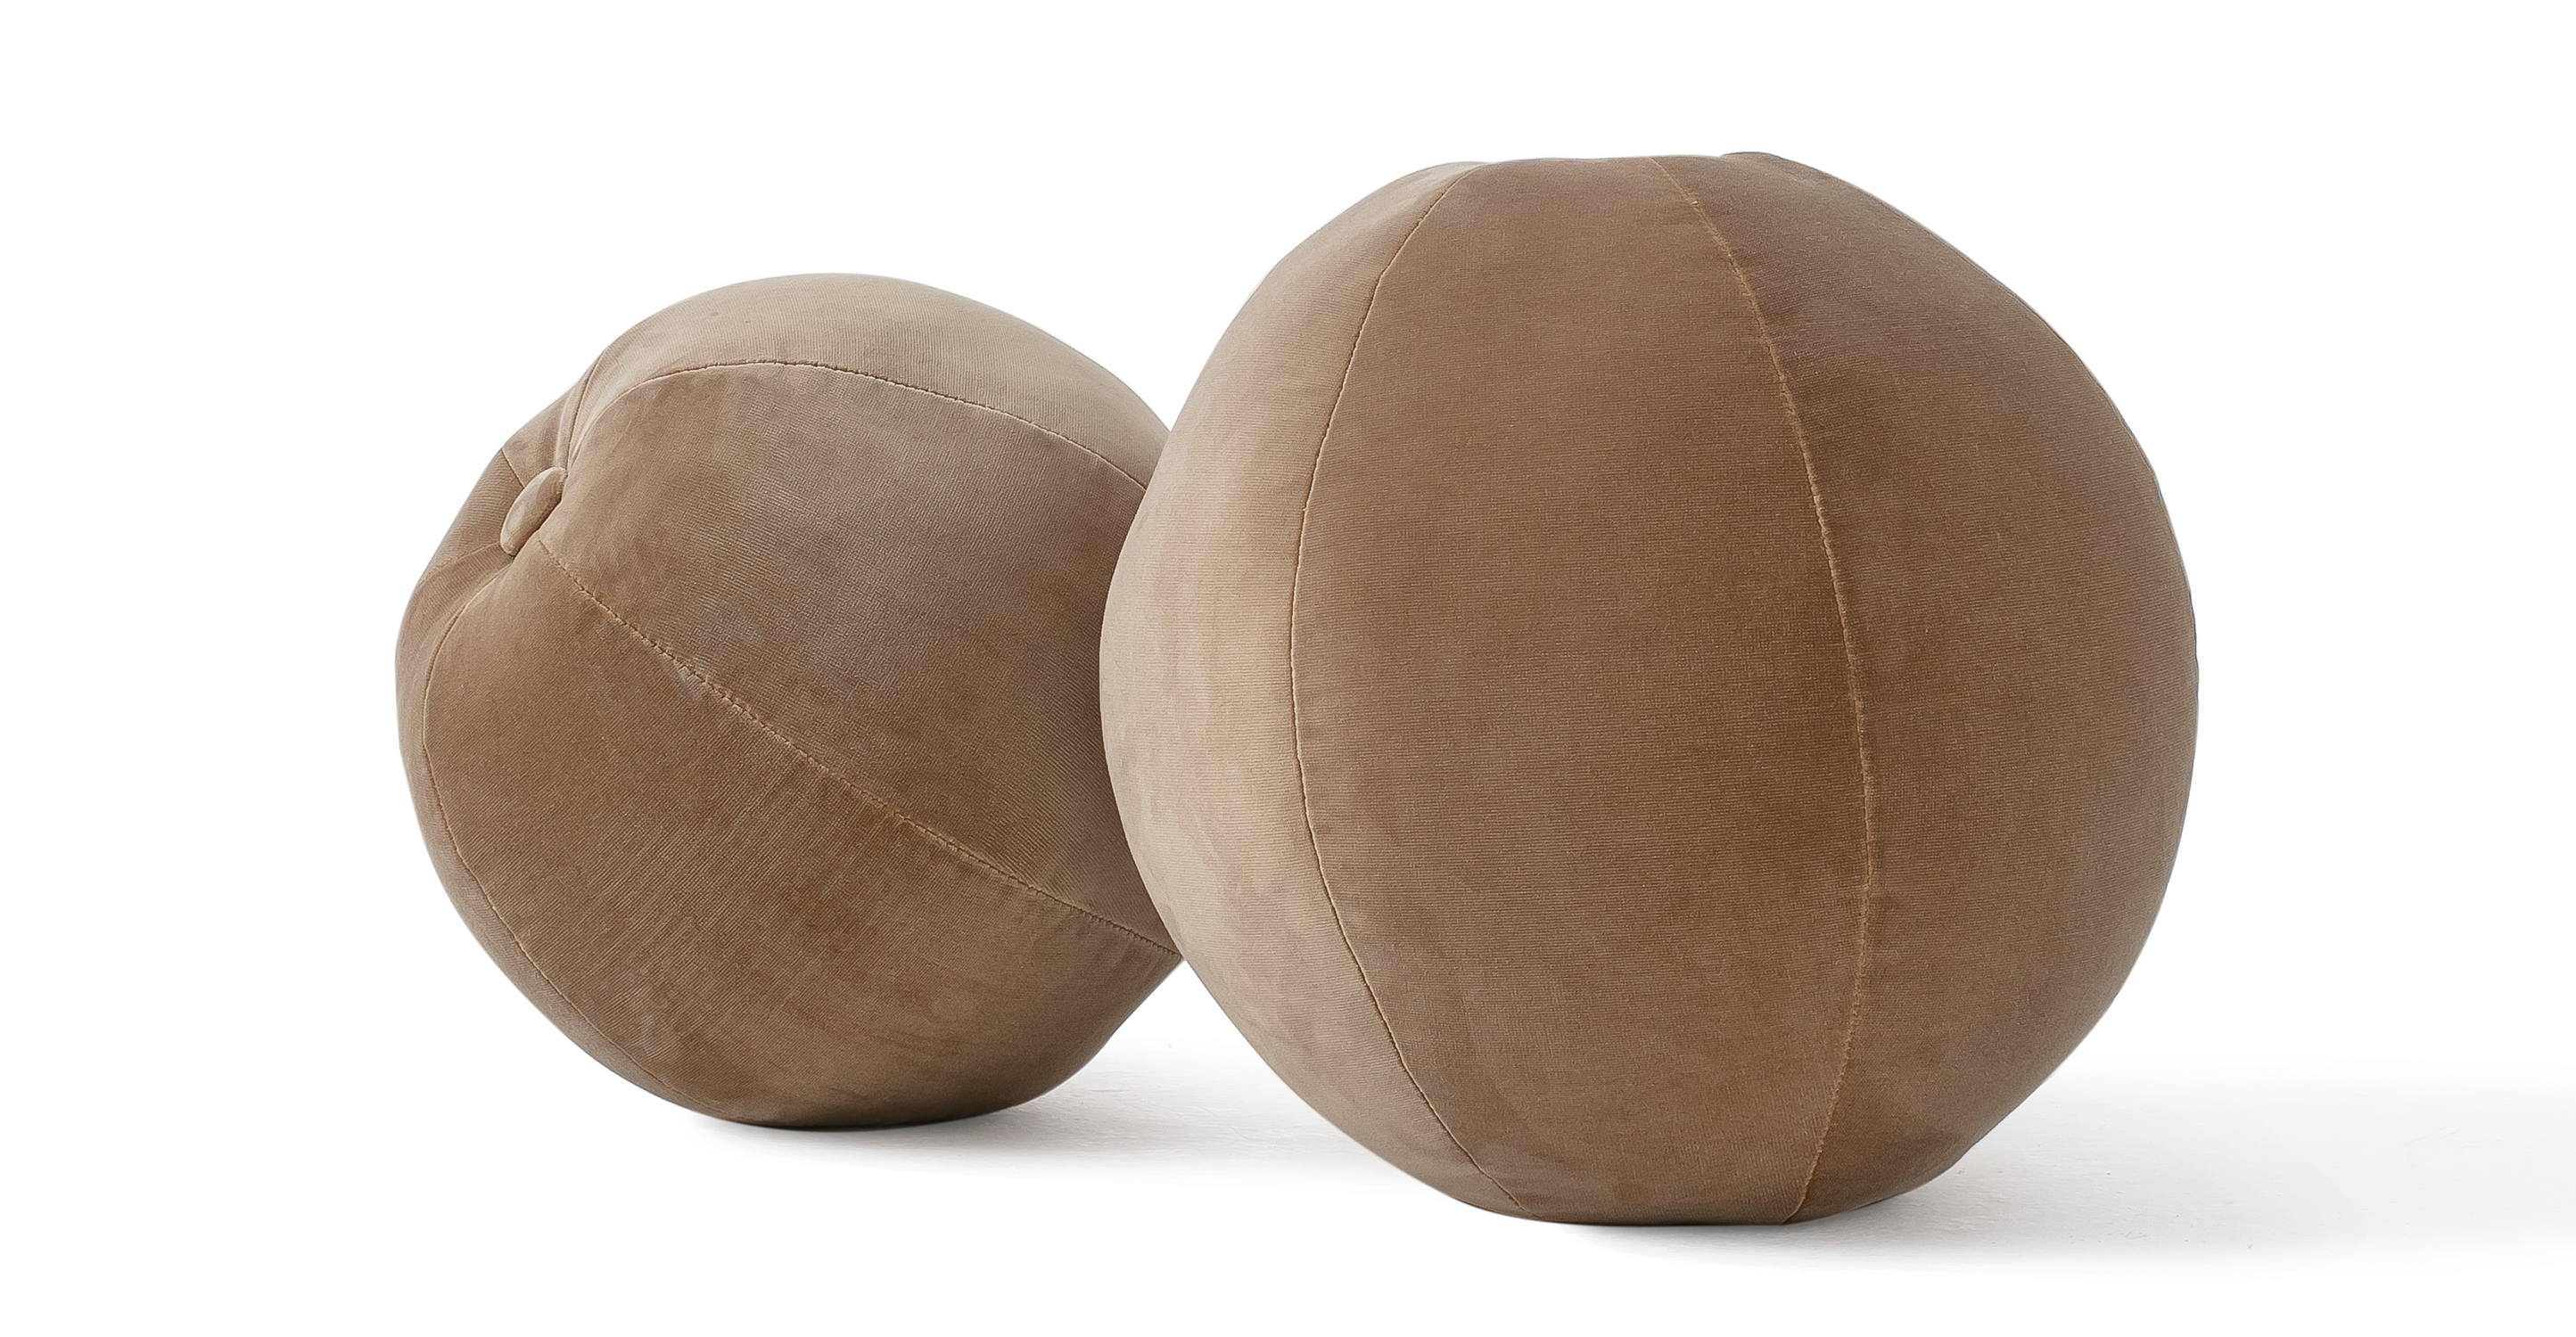 Mid-Century 2-Pc Orb Pillows, Sand Velvet